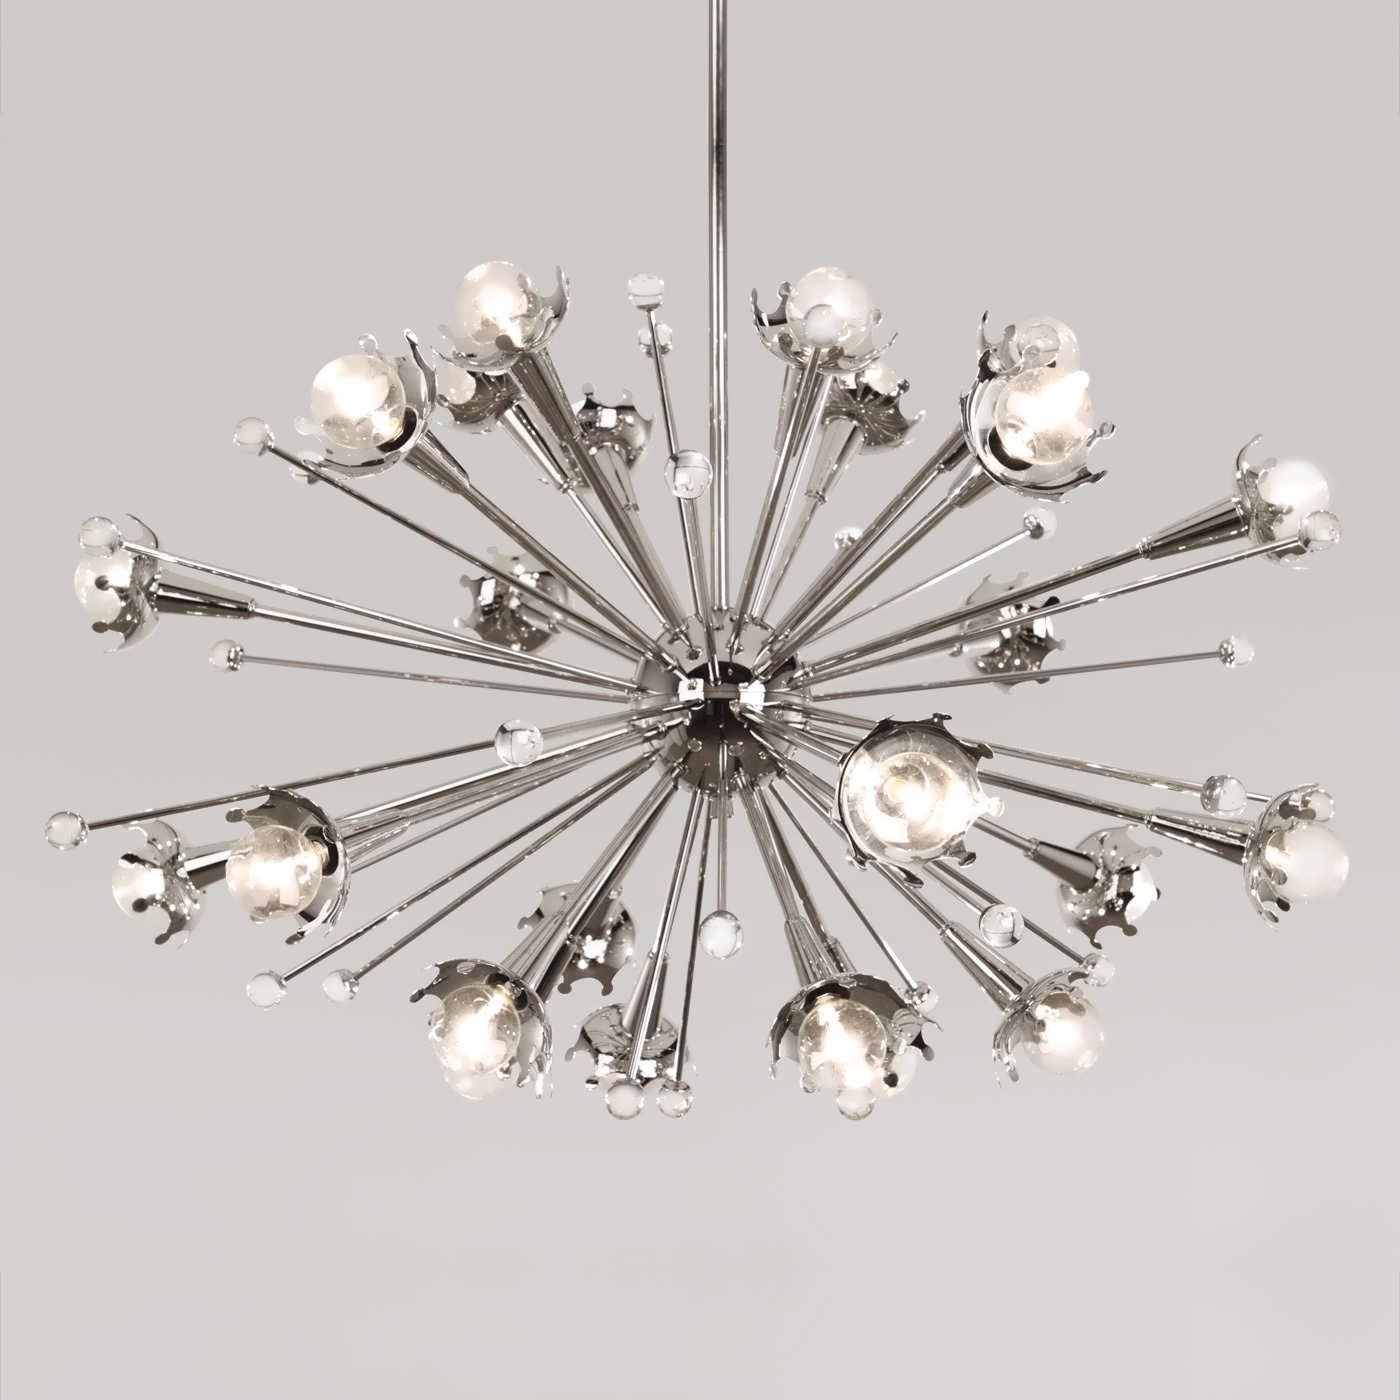 Atom Chandeliers Pertaining To Newest Chandelier : Overstock Chandeliers Chandelier Lamp Sputnik Style (View 7 of 20)